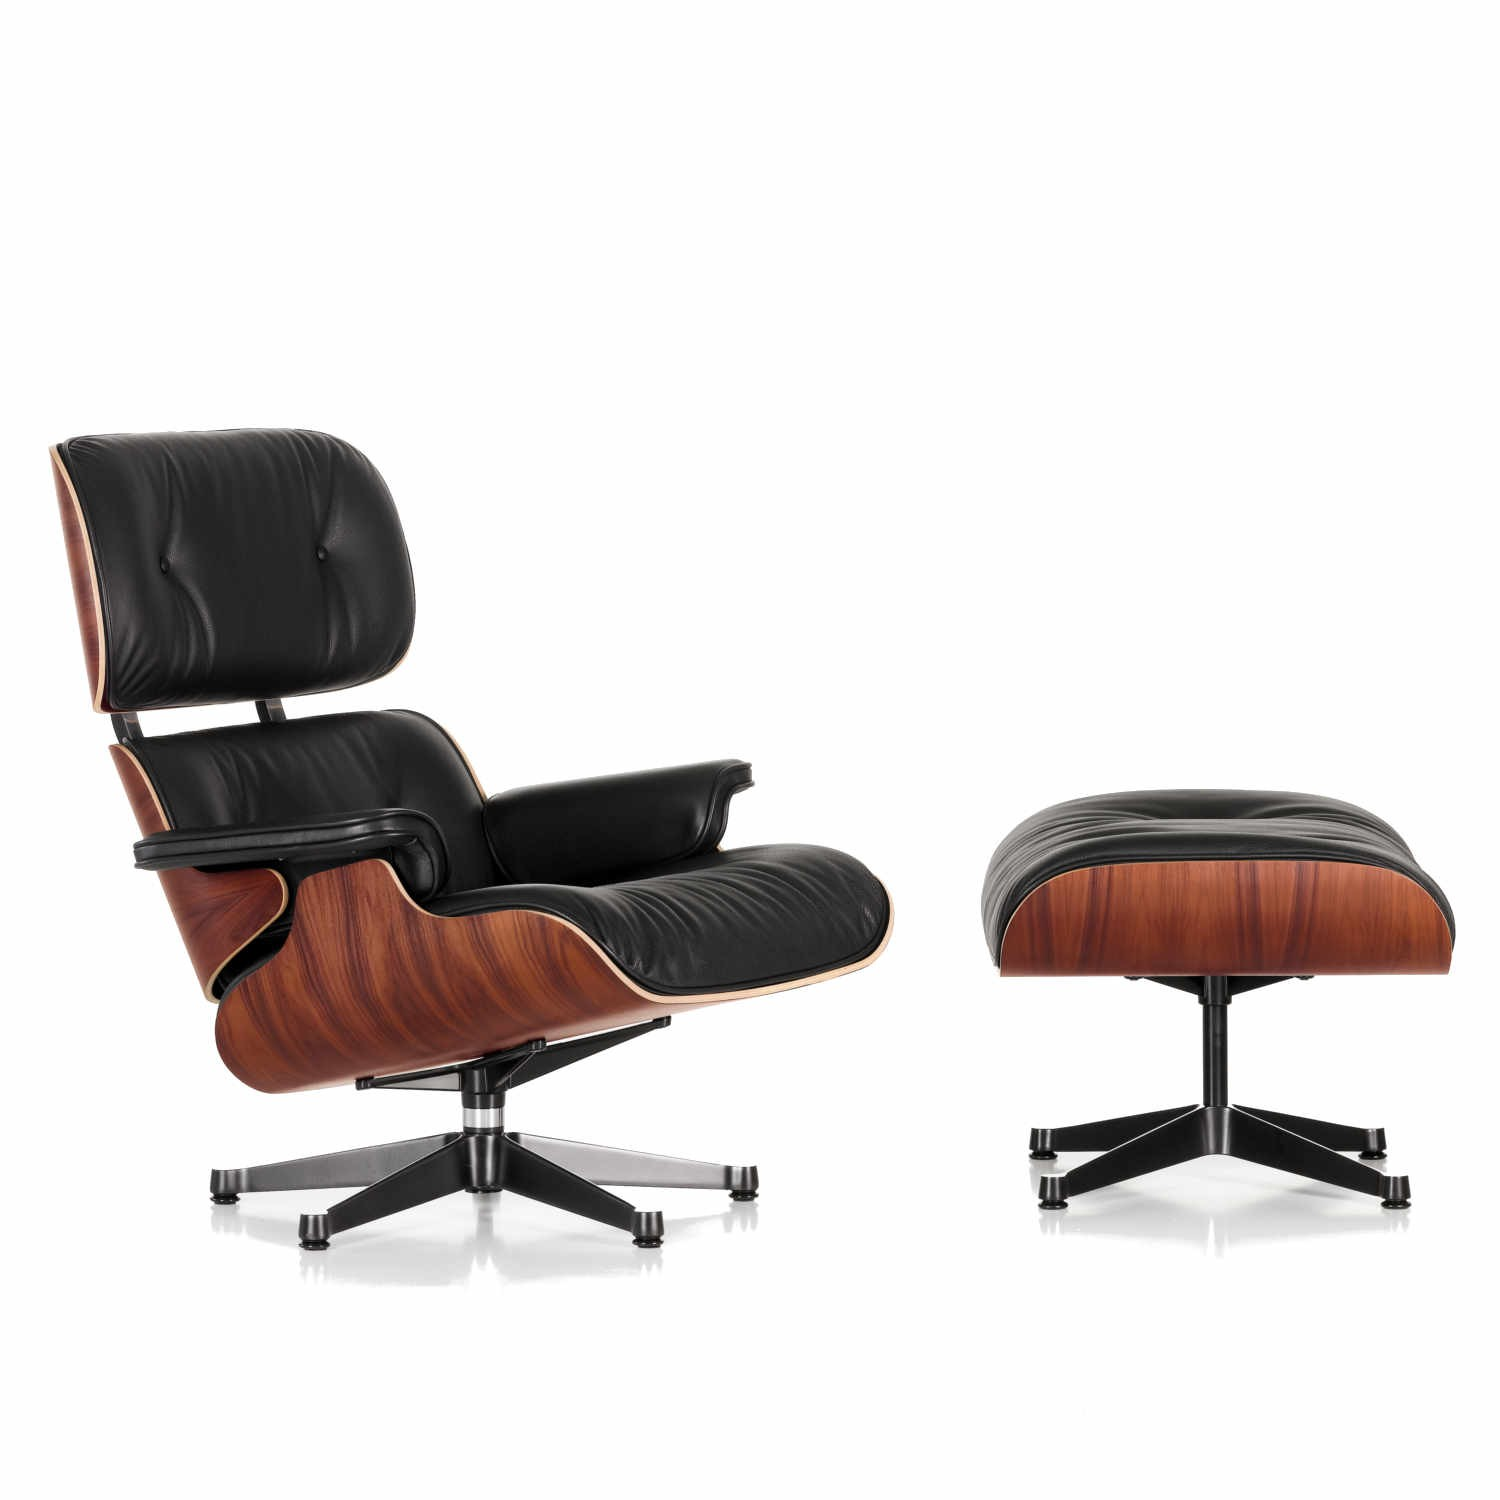 Vitra lounge chair von charles und ray eames der for Vitra design sessel